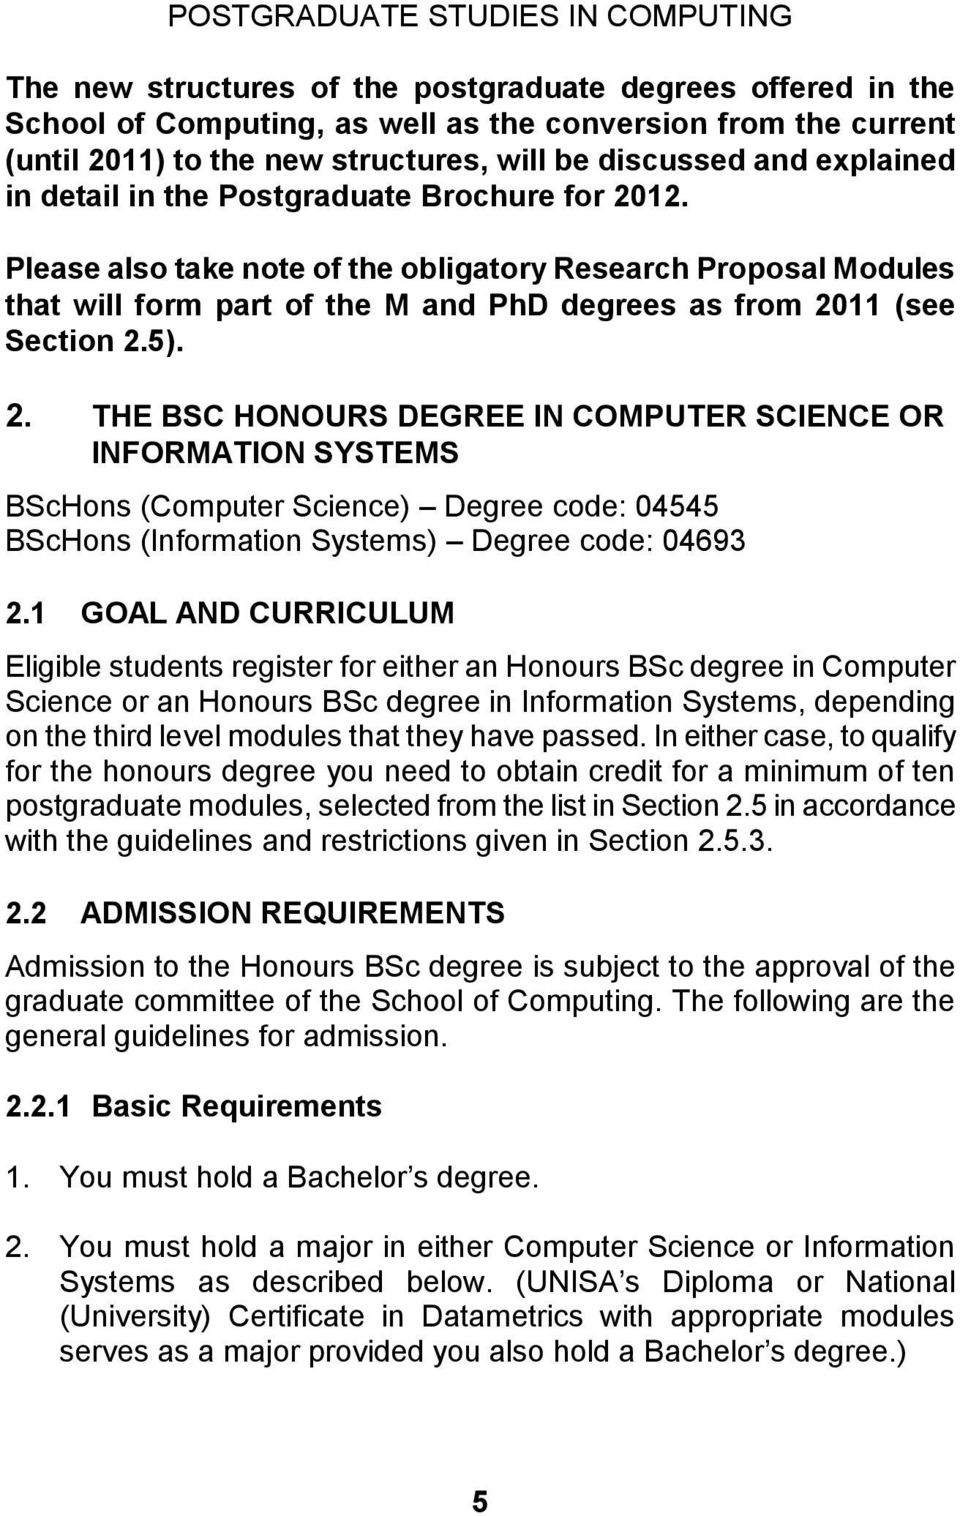 thesis proposal computer science